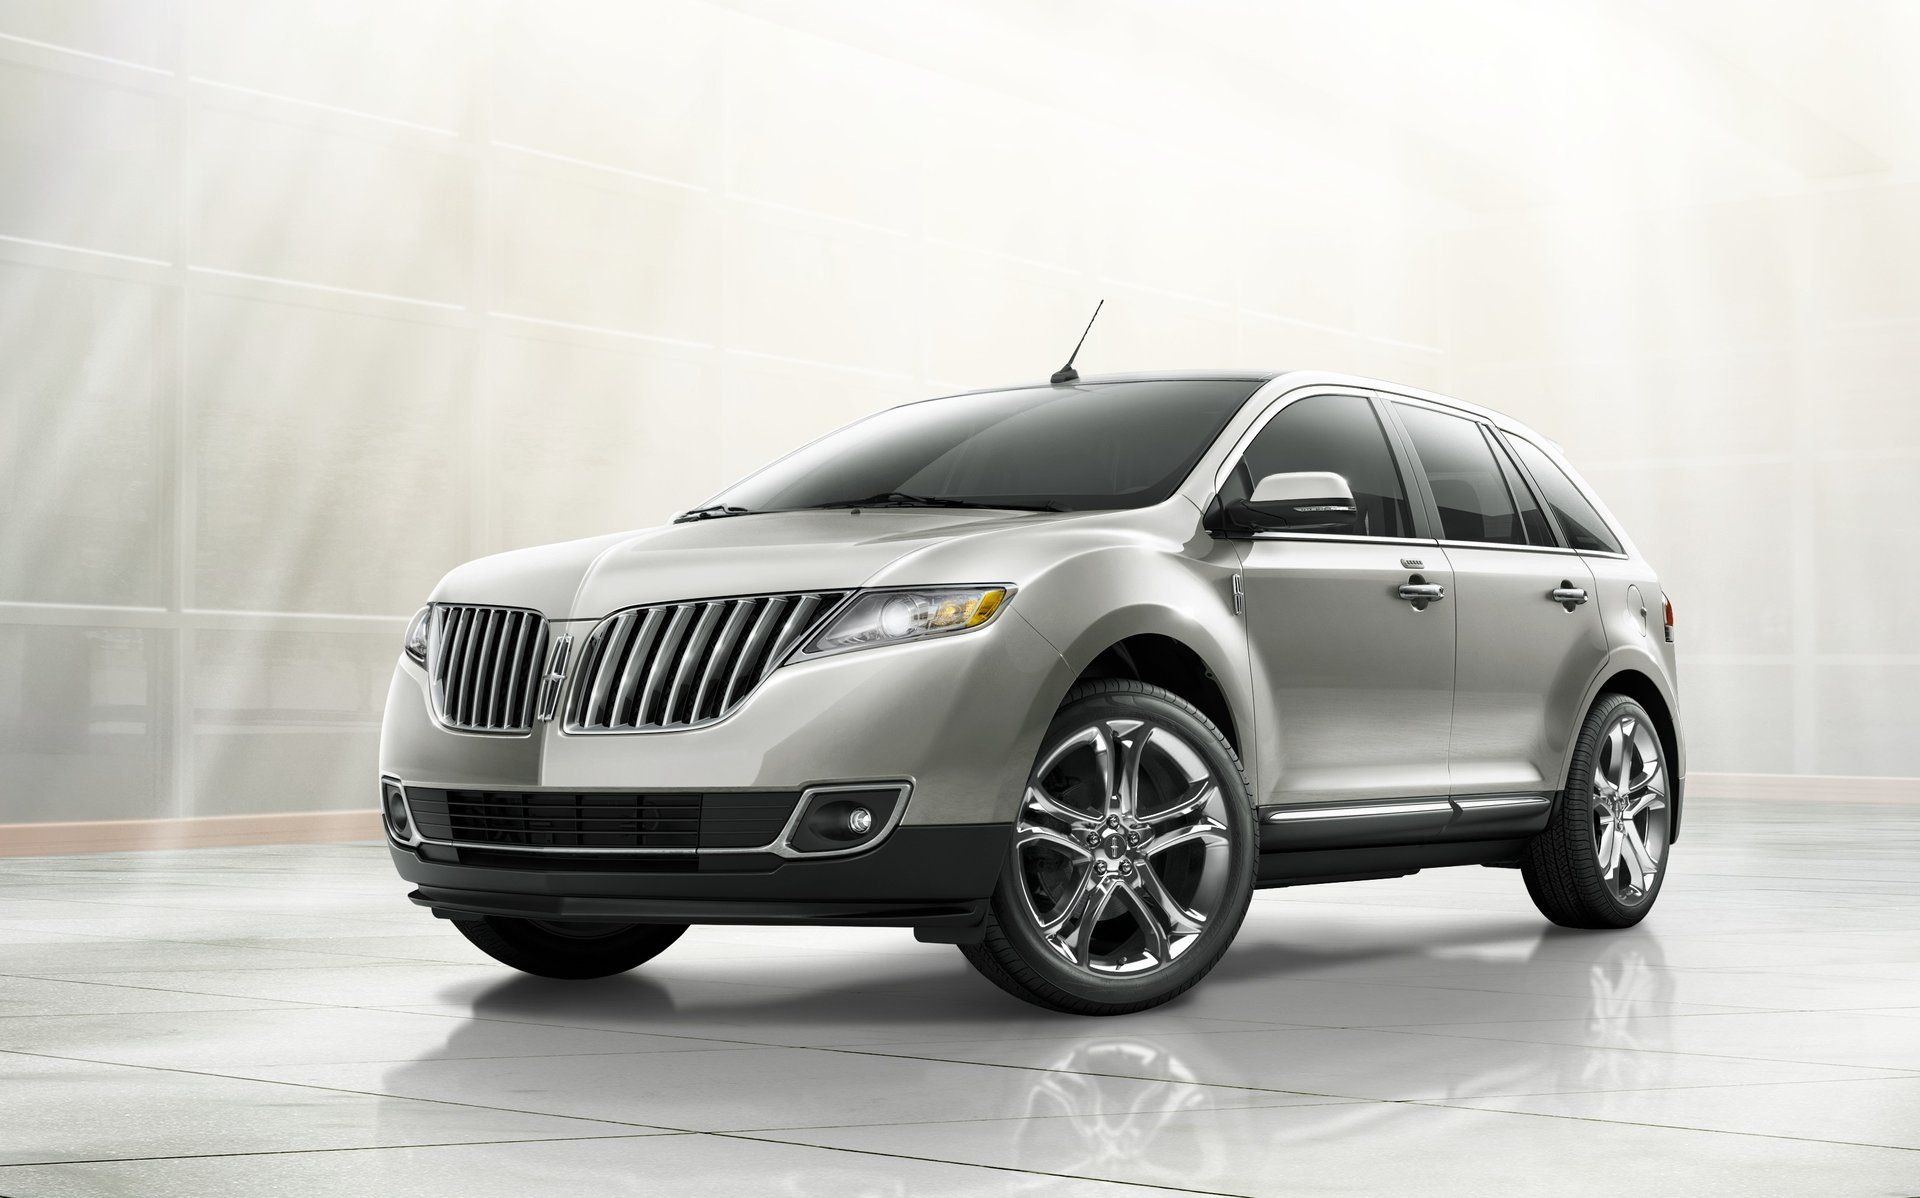 review original mkc photos and info driver car photo news first drive lincoln crossover reviews suv s